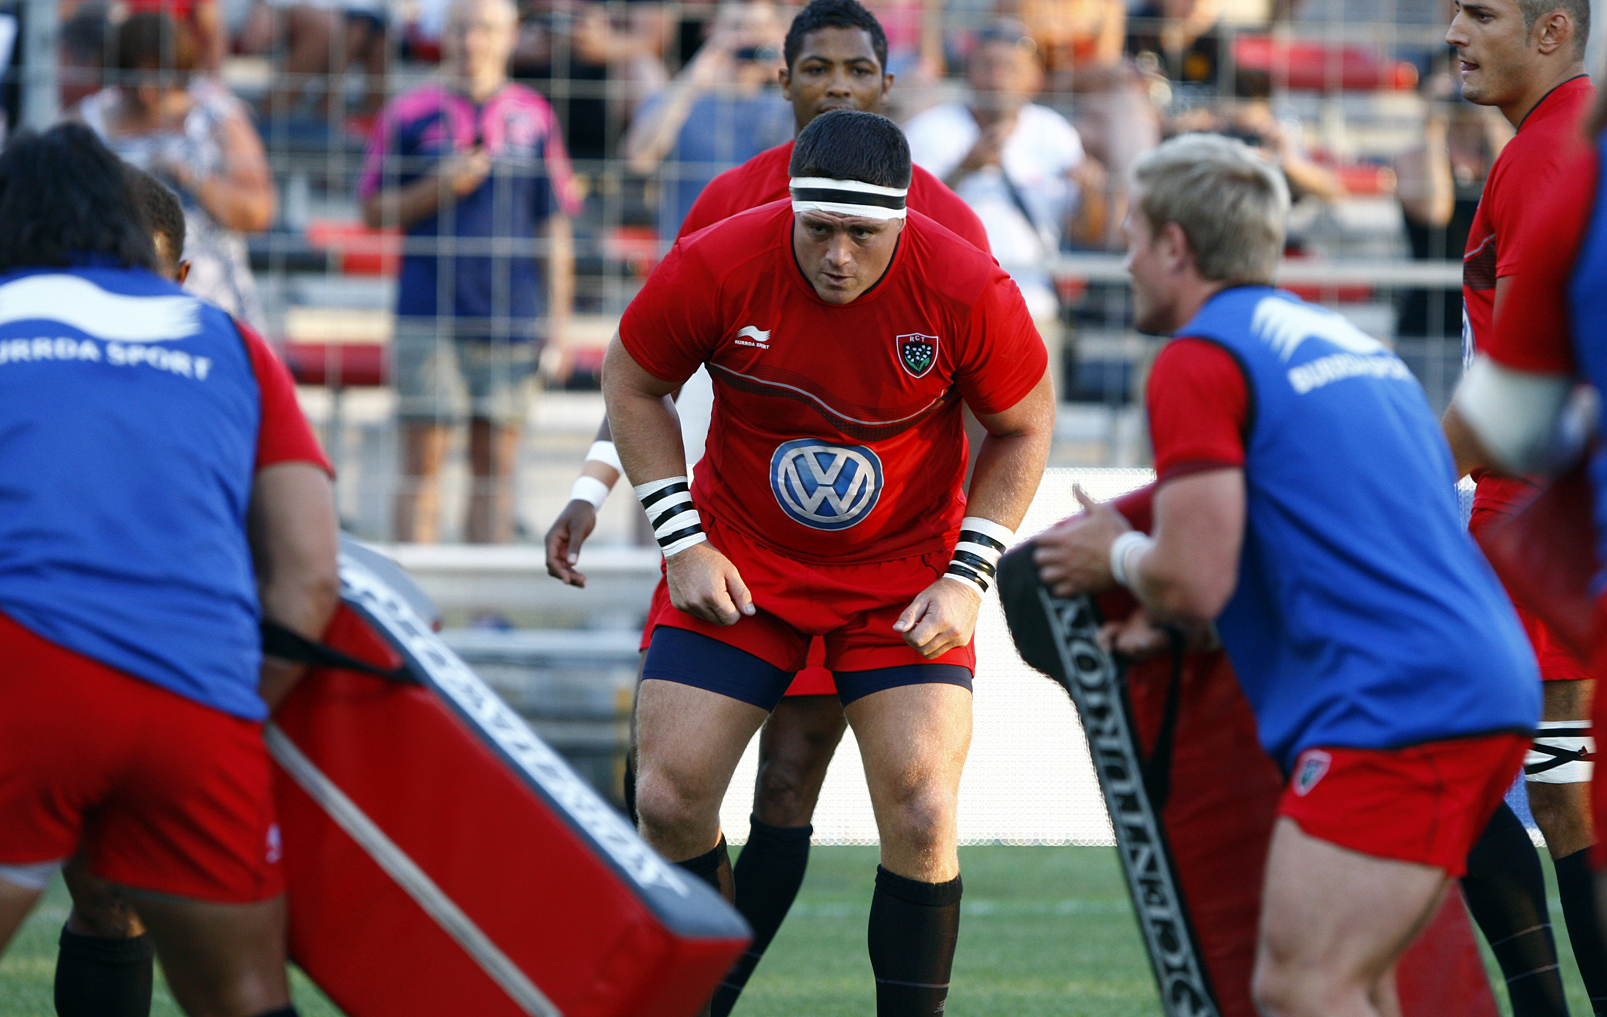 Rugby - Top 14 - Andrew Sheridan raccroche les crampons